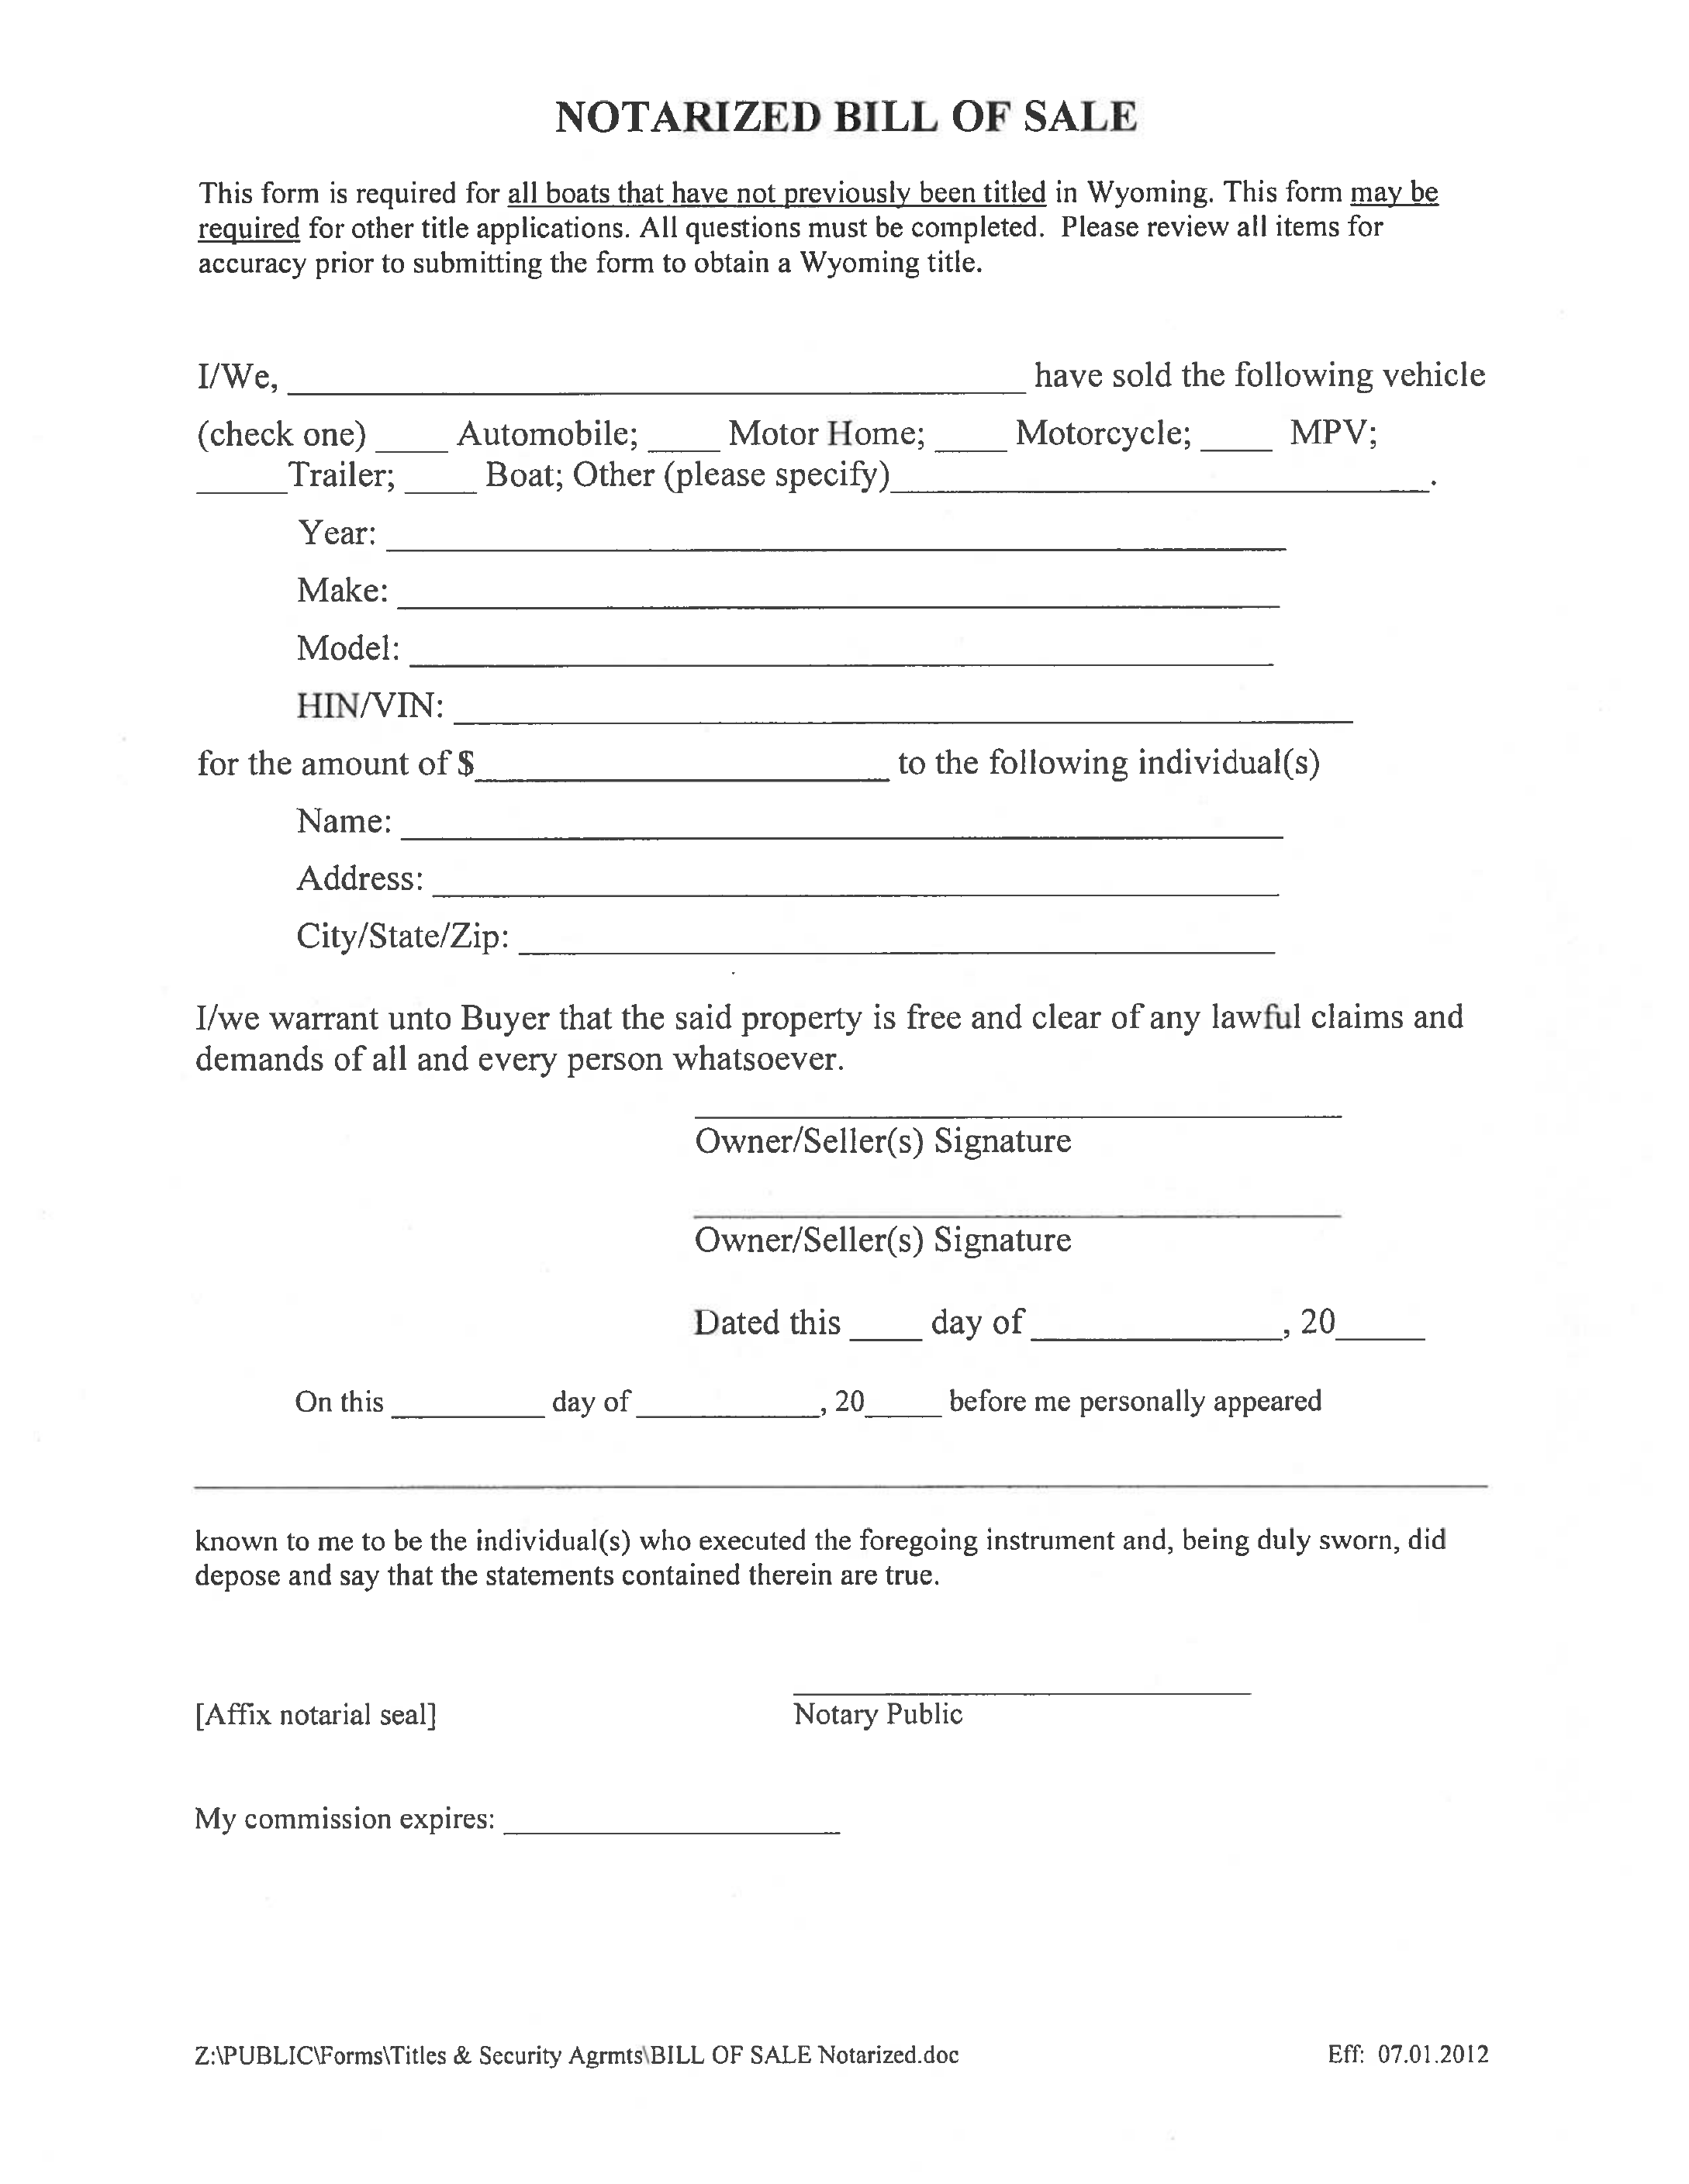 Notarized Boat Bill Of Sale Form   Wyoming PDF  Bill Of Sale Template For Boat